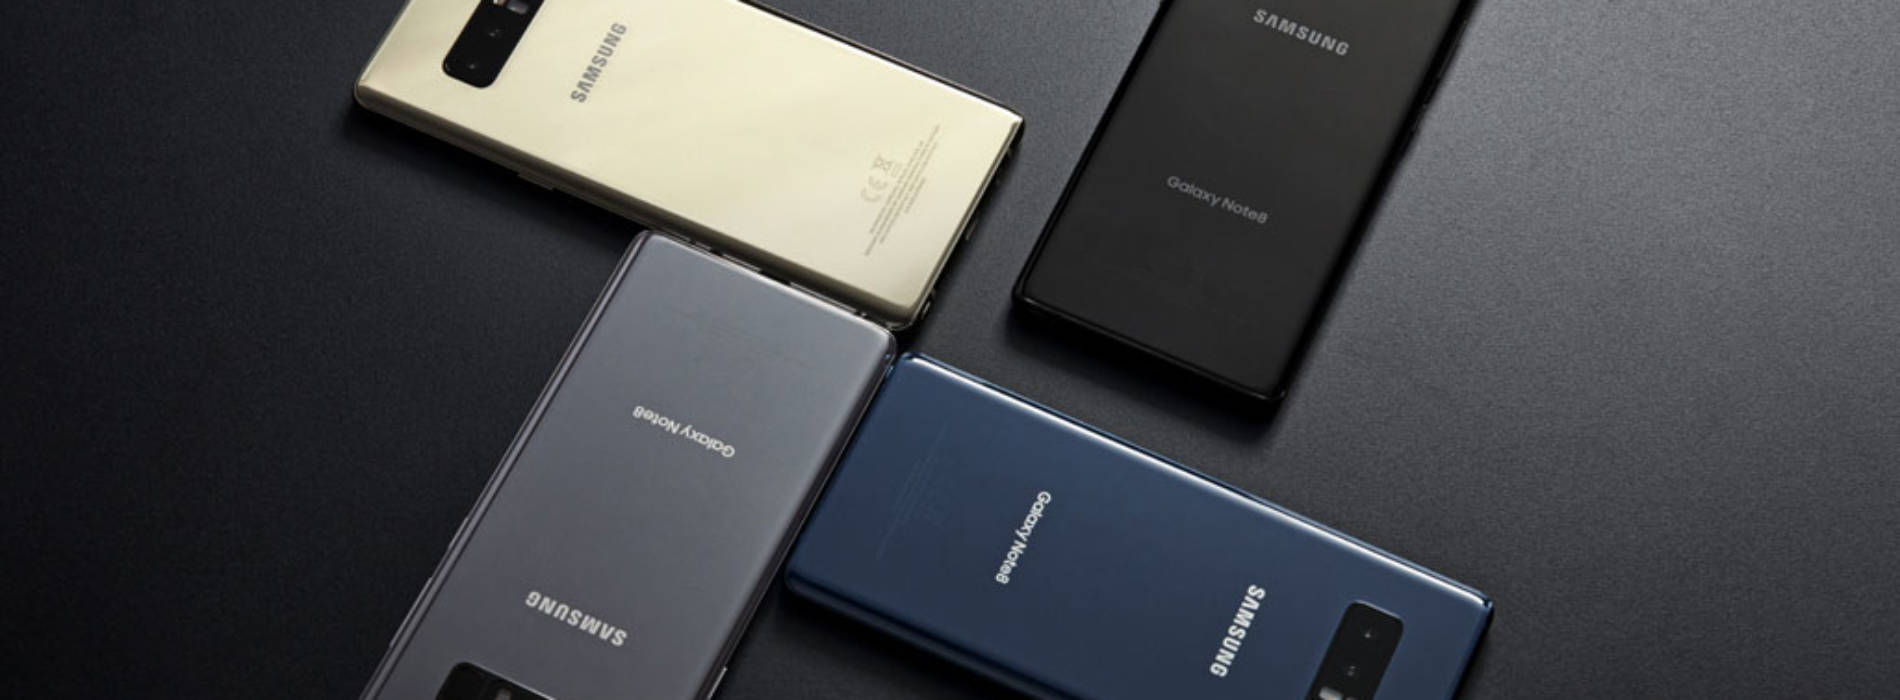 Samsung Galaxy Note8: Sus claves